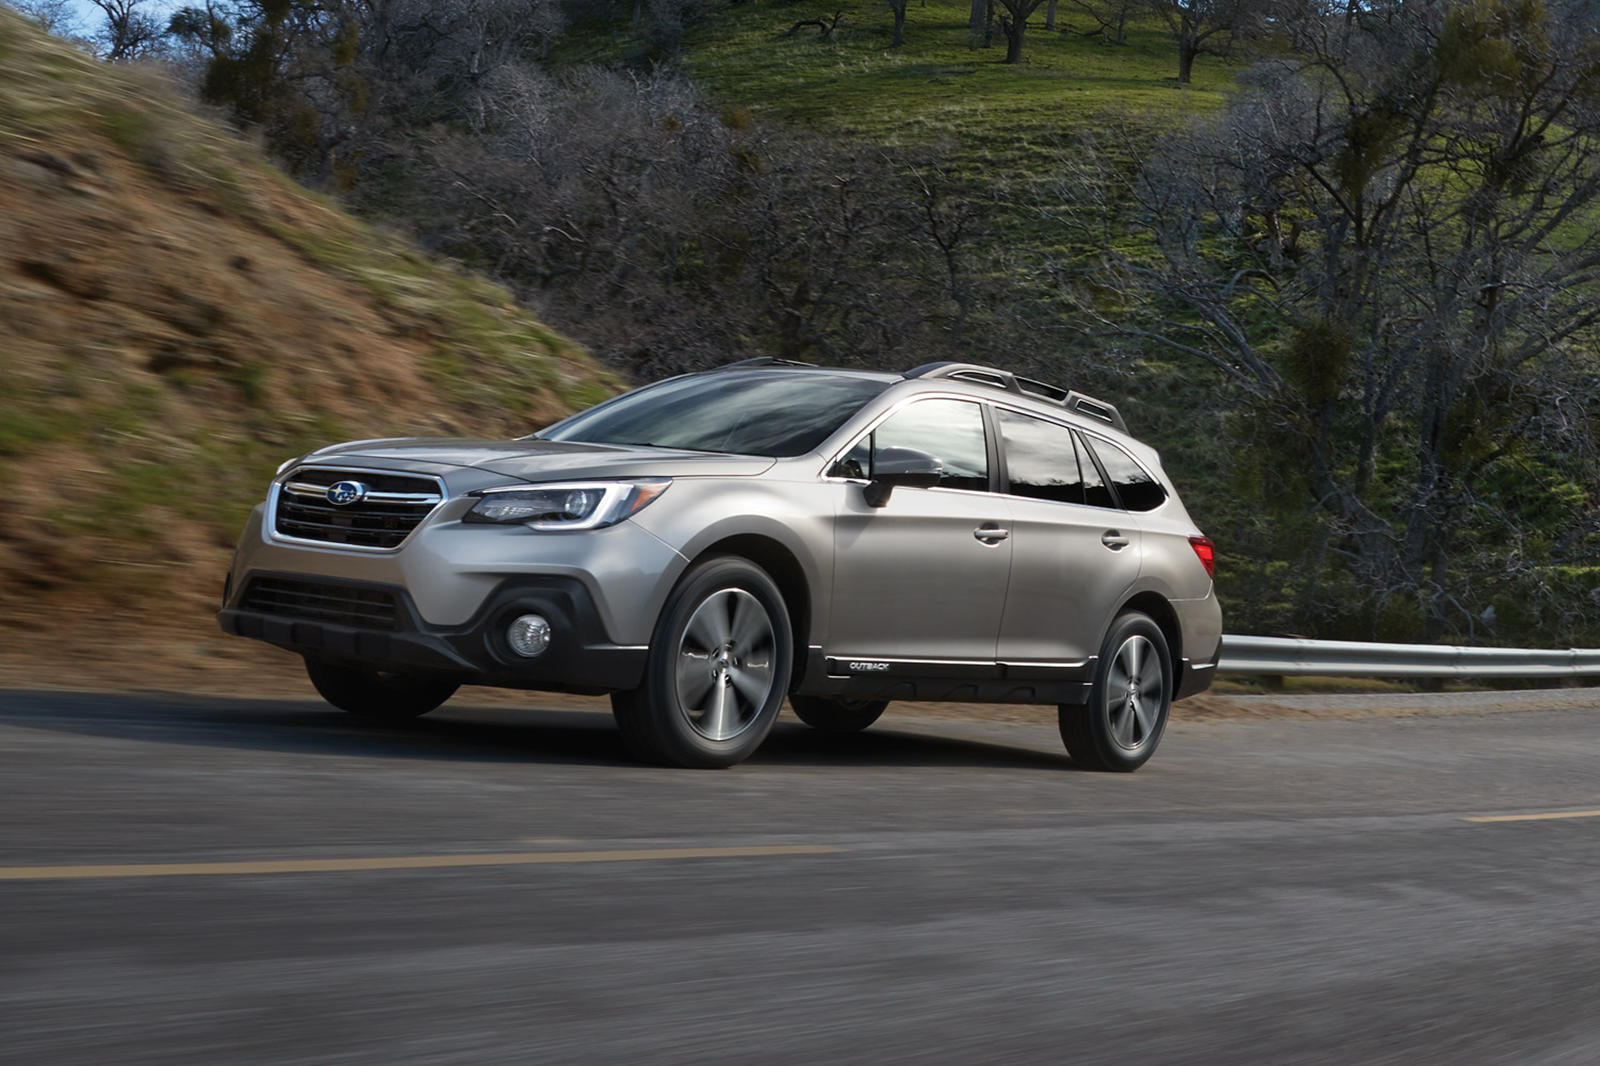 2020 subaru outback will arrive later this year | carbuzz